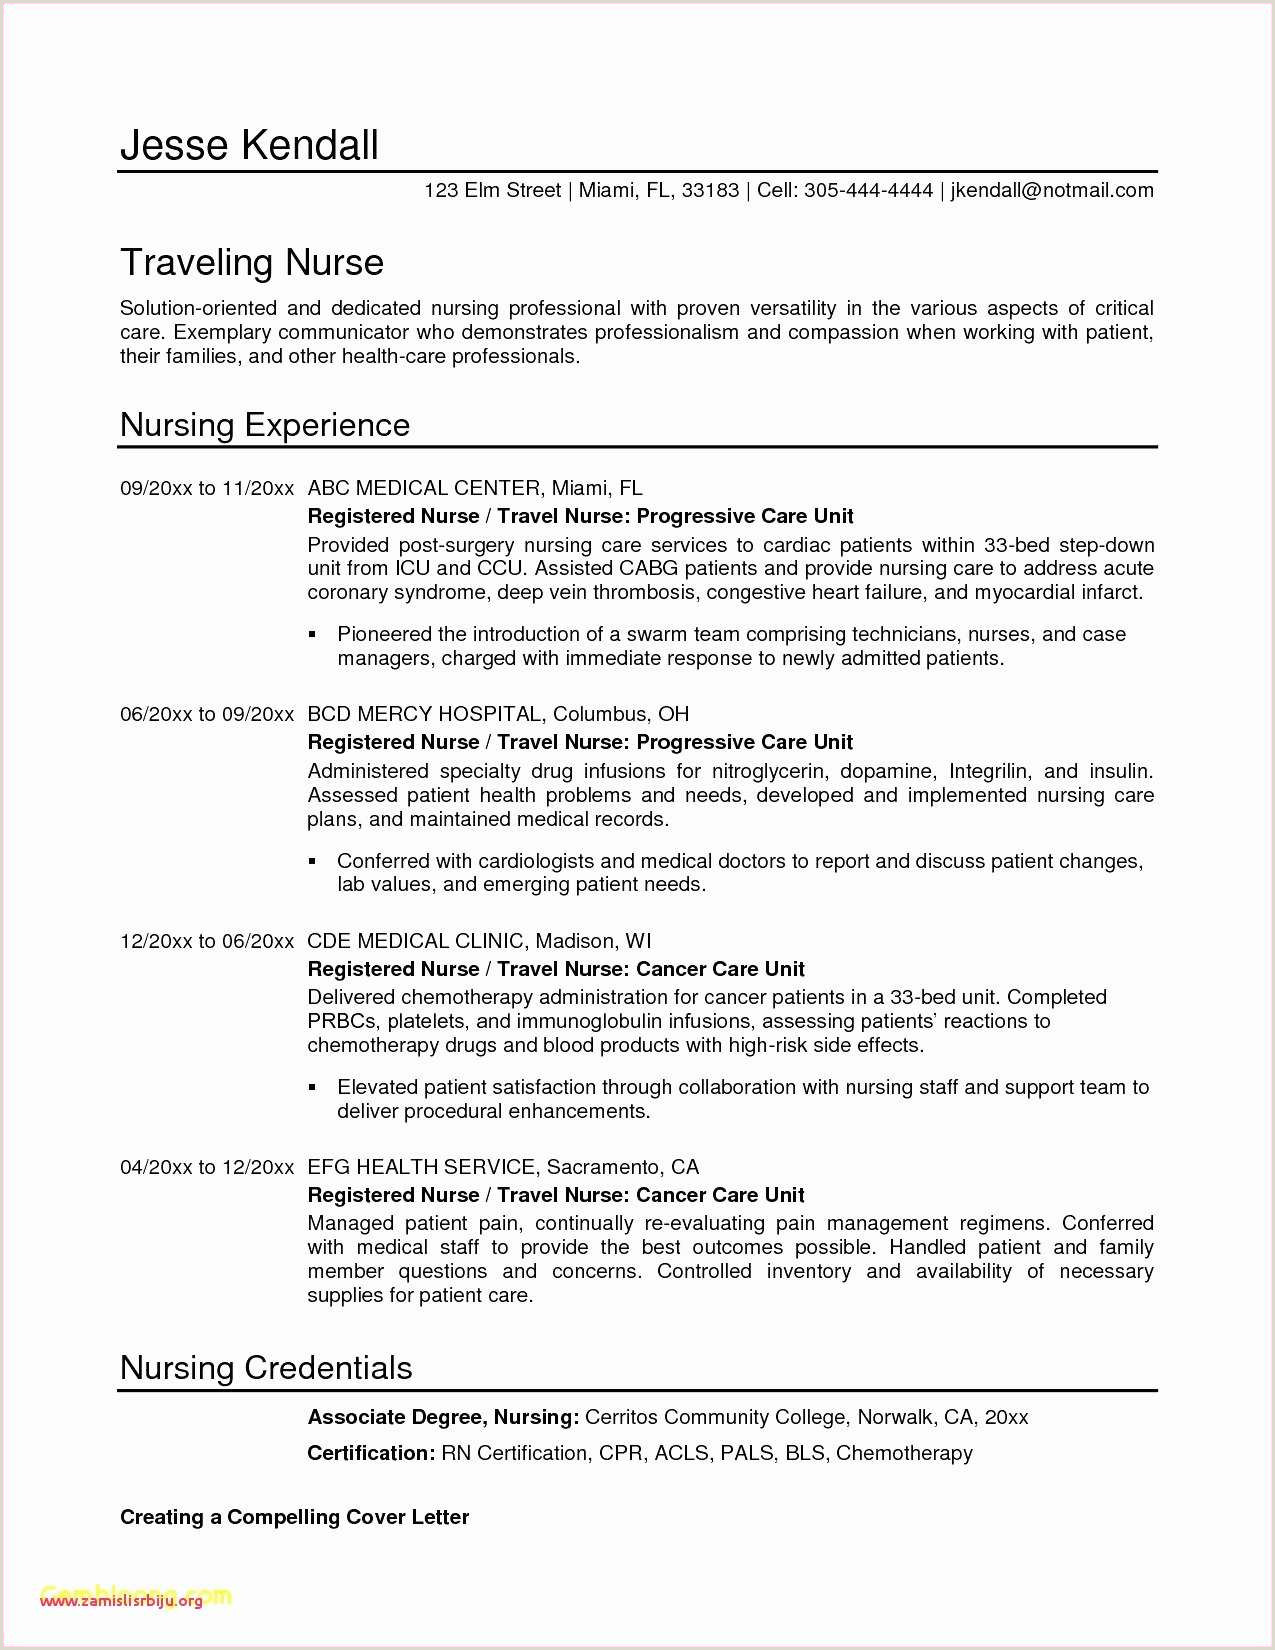 Template Cv Word Libre New Cv format Resume format In Word